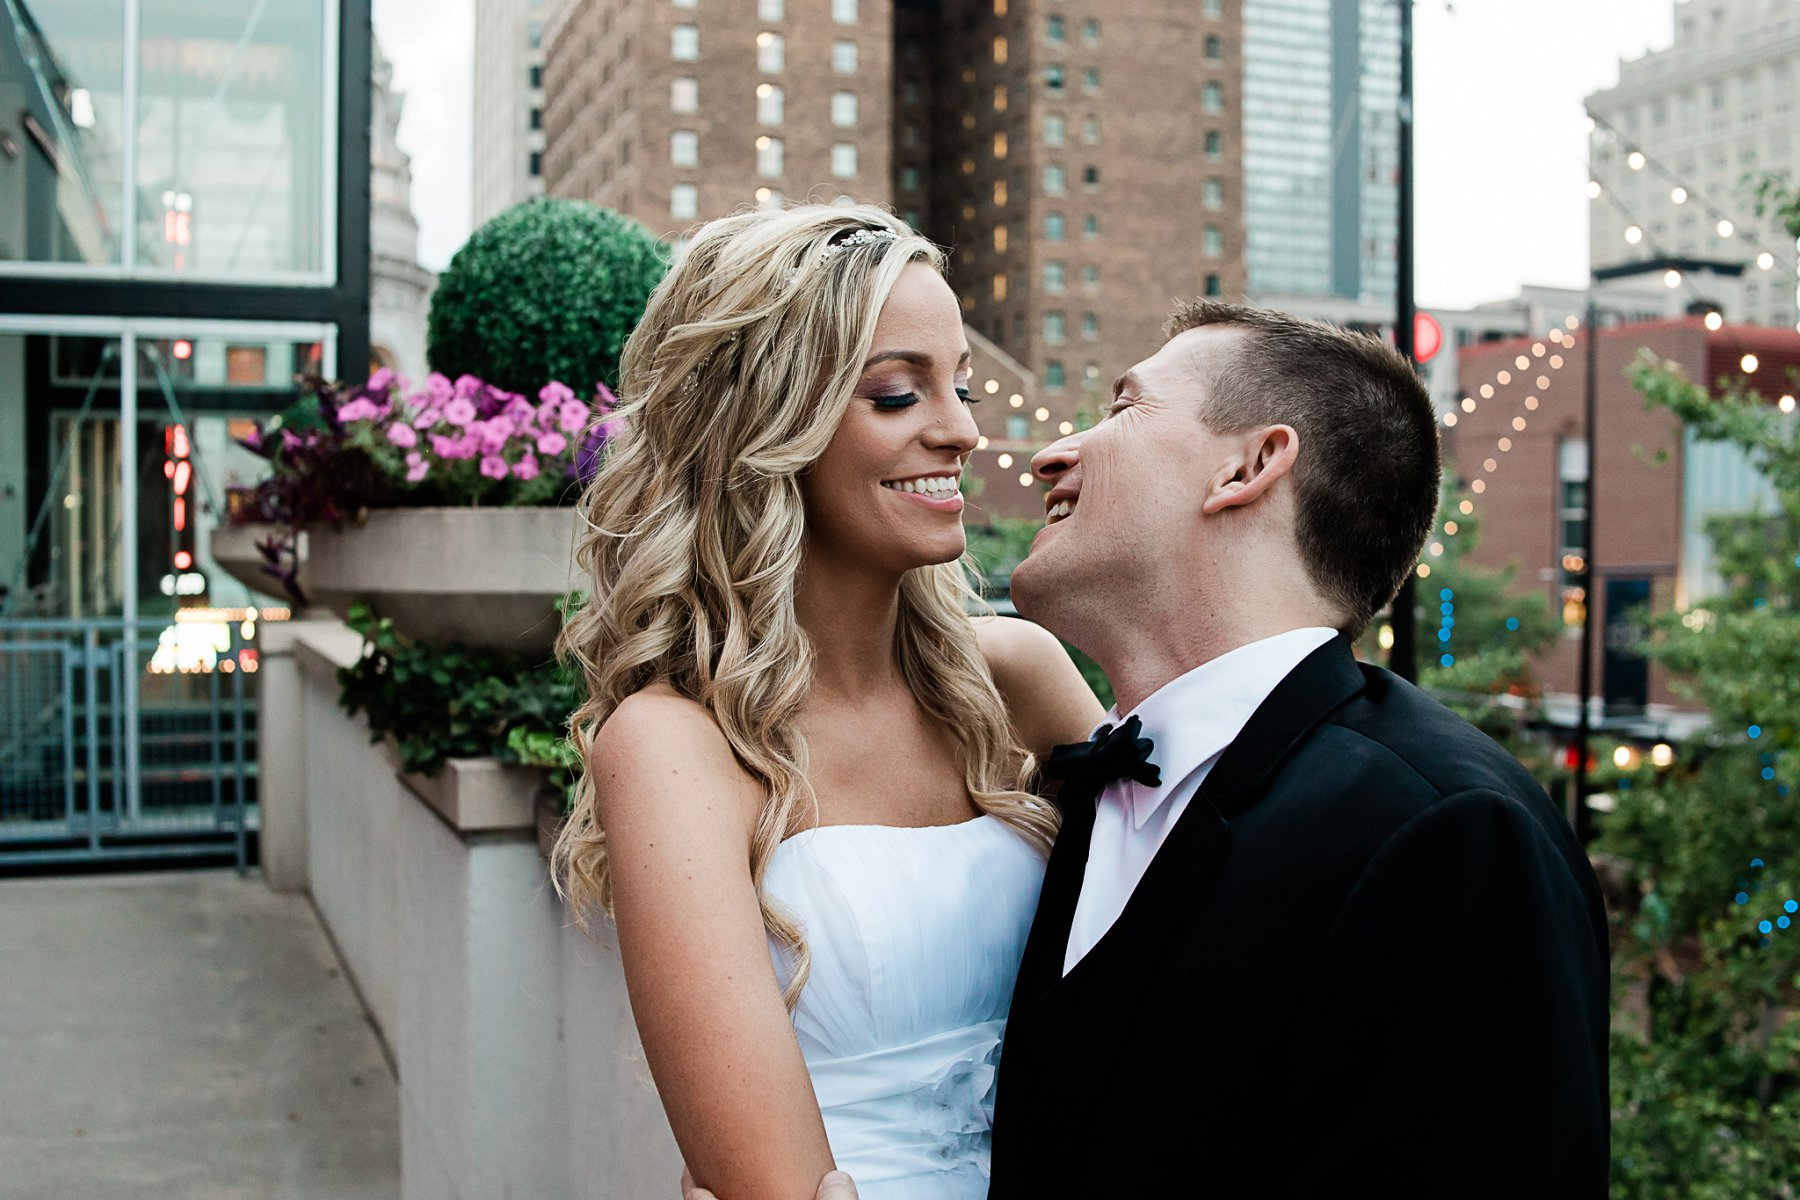 Wedding Photography at The Gallery Event Space by Merry Ohler (1)